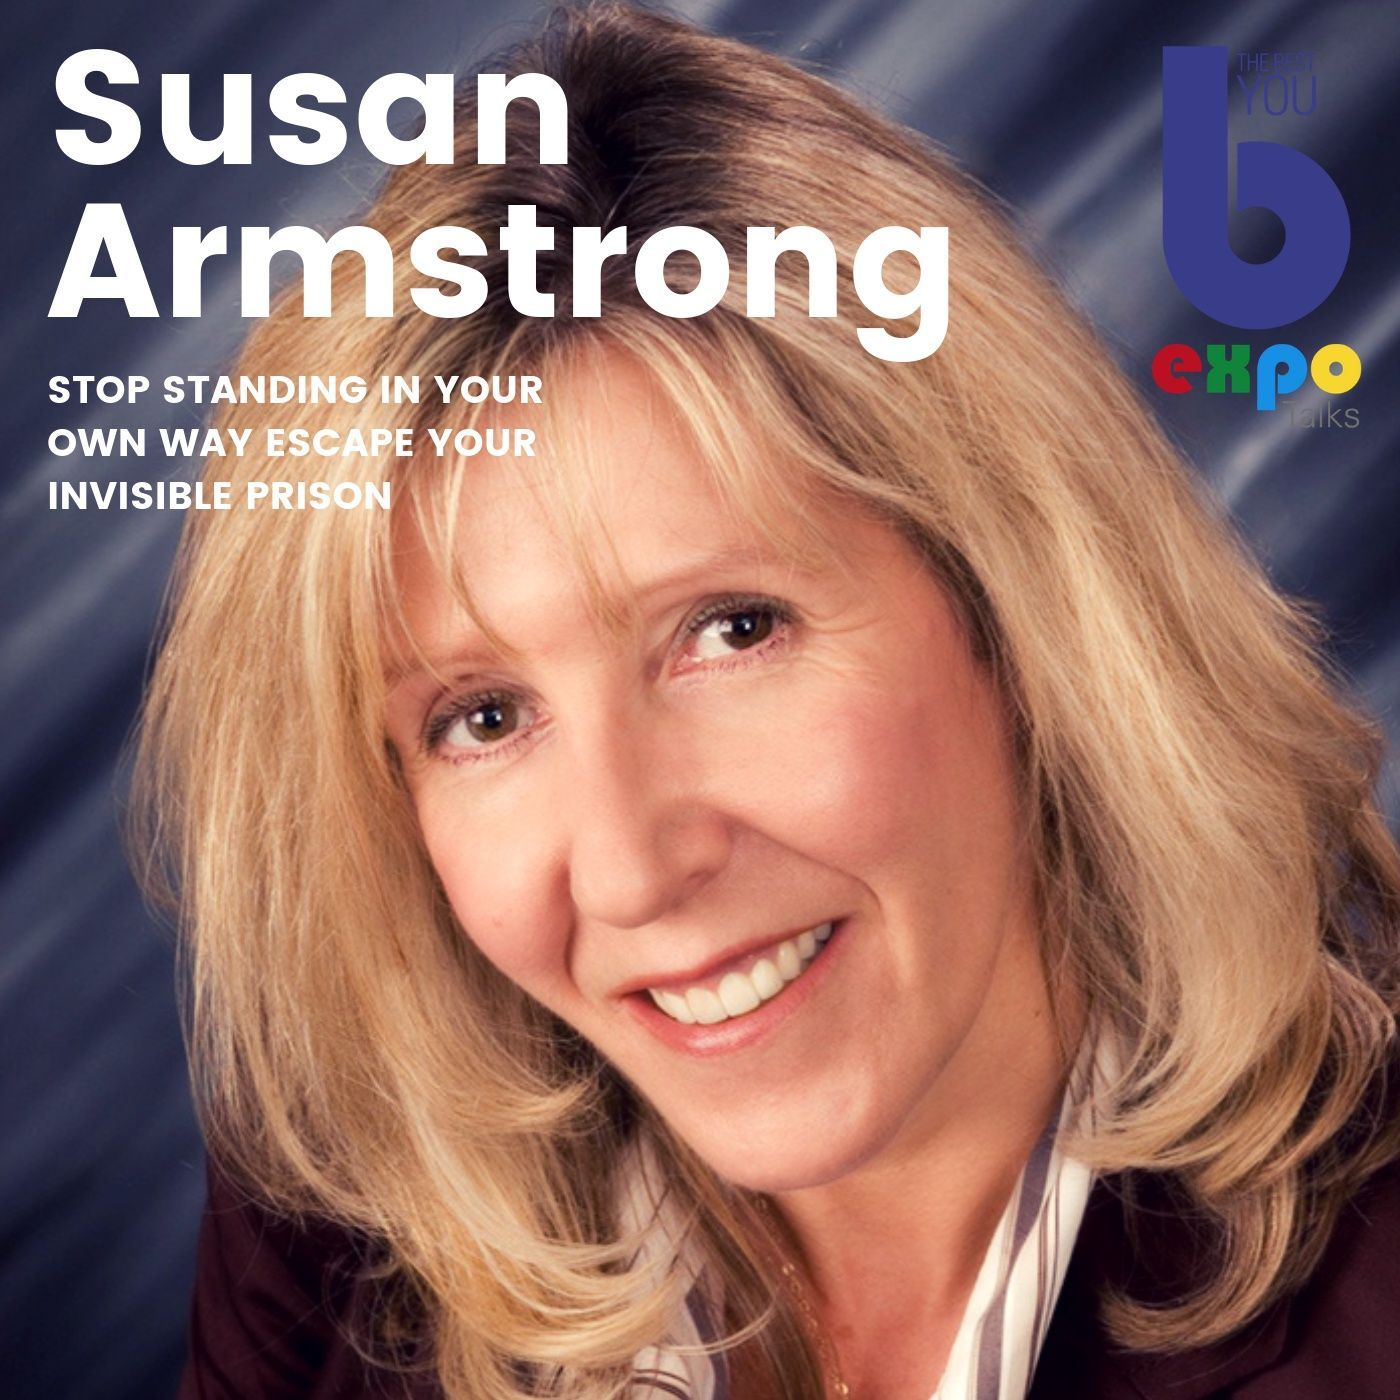 Listen to Susan Armstrong at The Best You EXPO